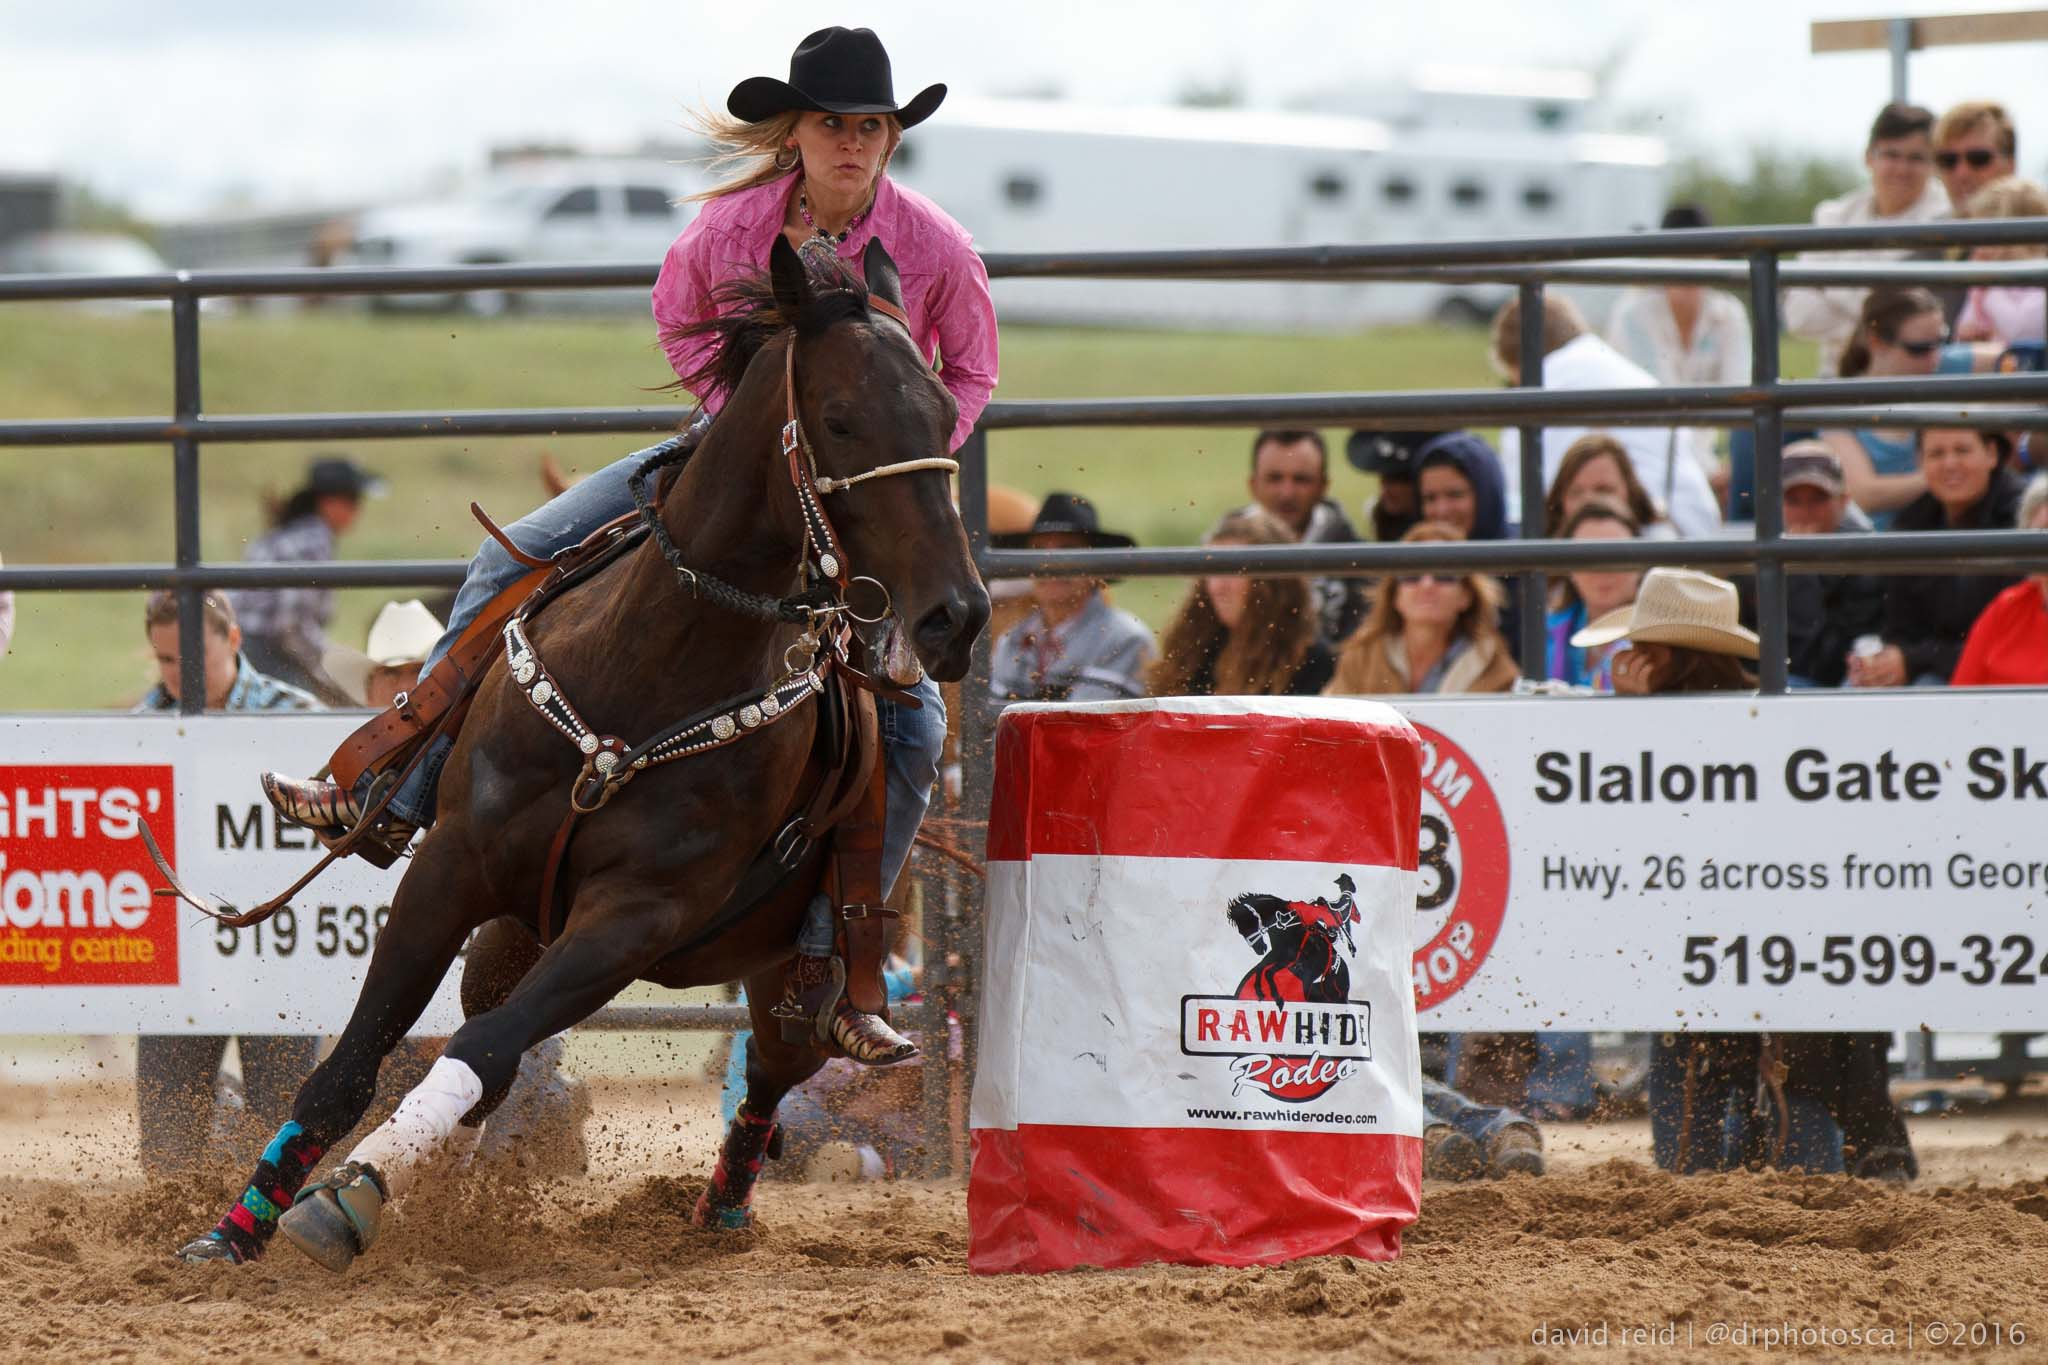 Rodeo barrel racing - photographer David Reid